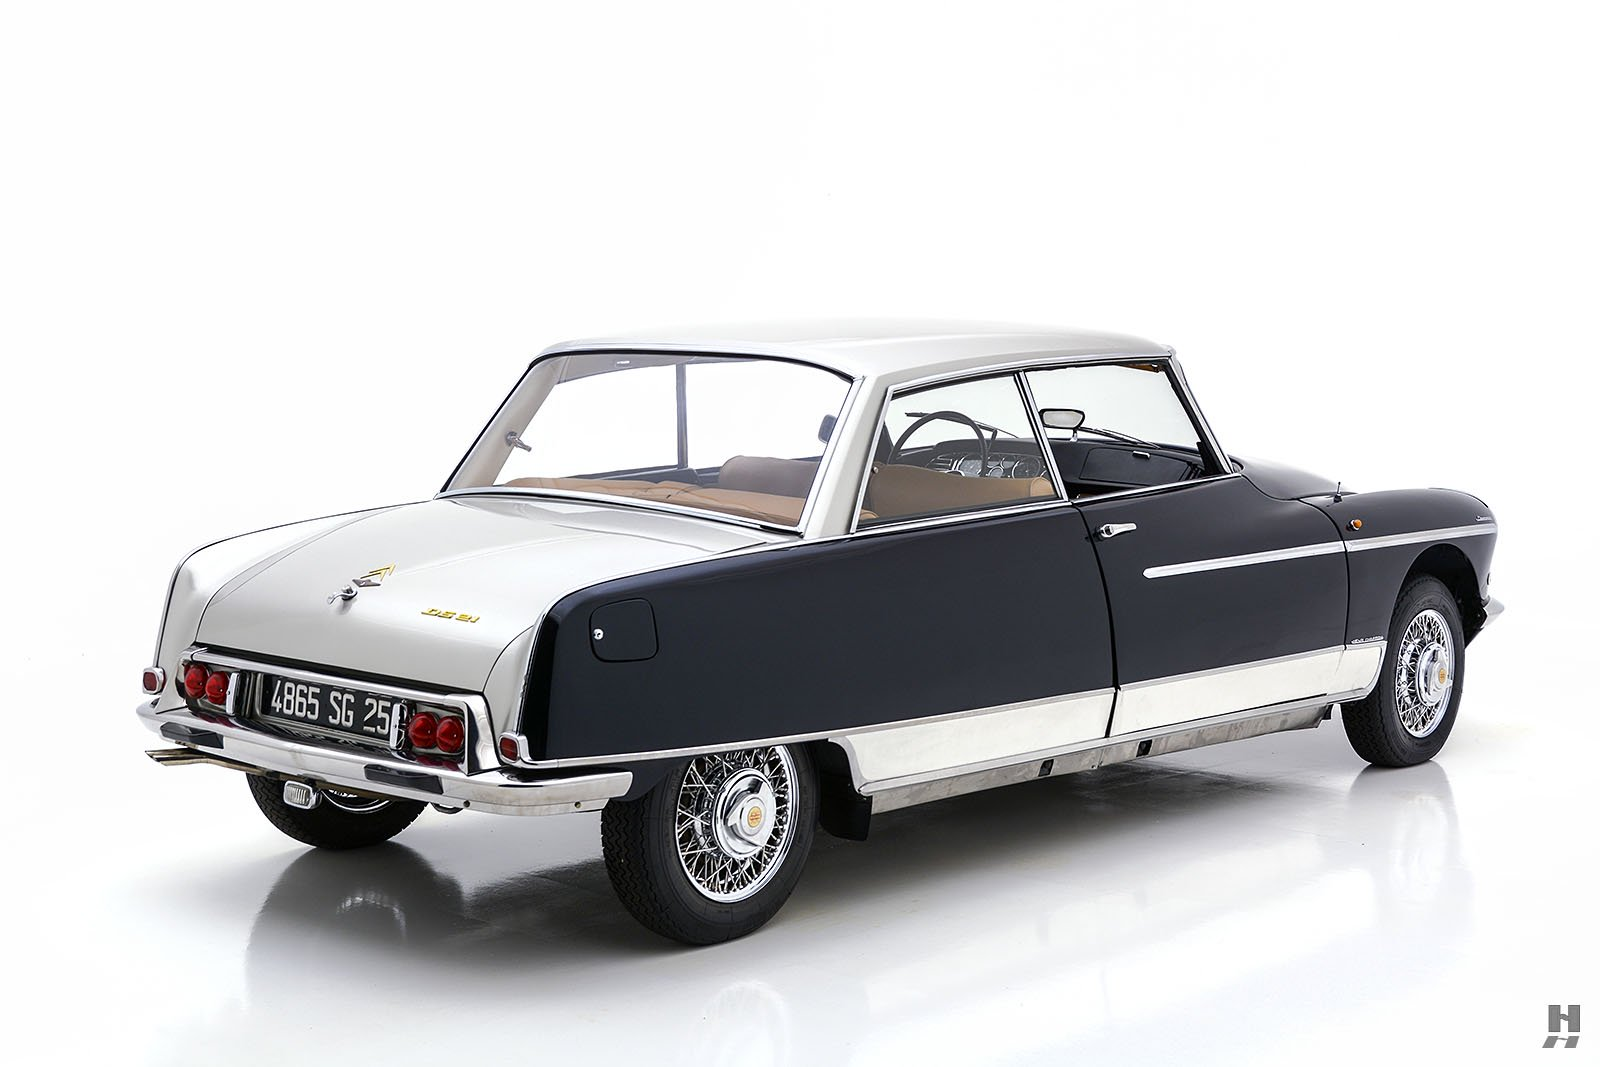 Citroen-DS21-Concorde-coupe-for-sale-7